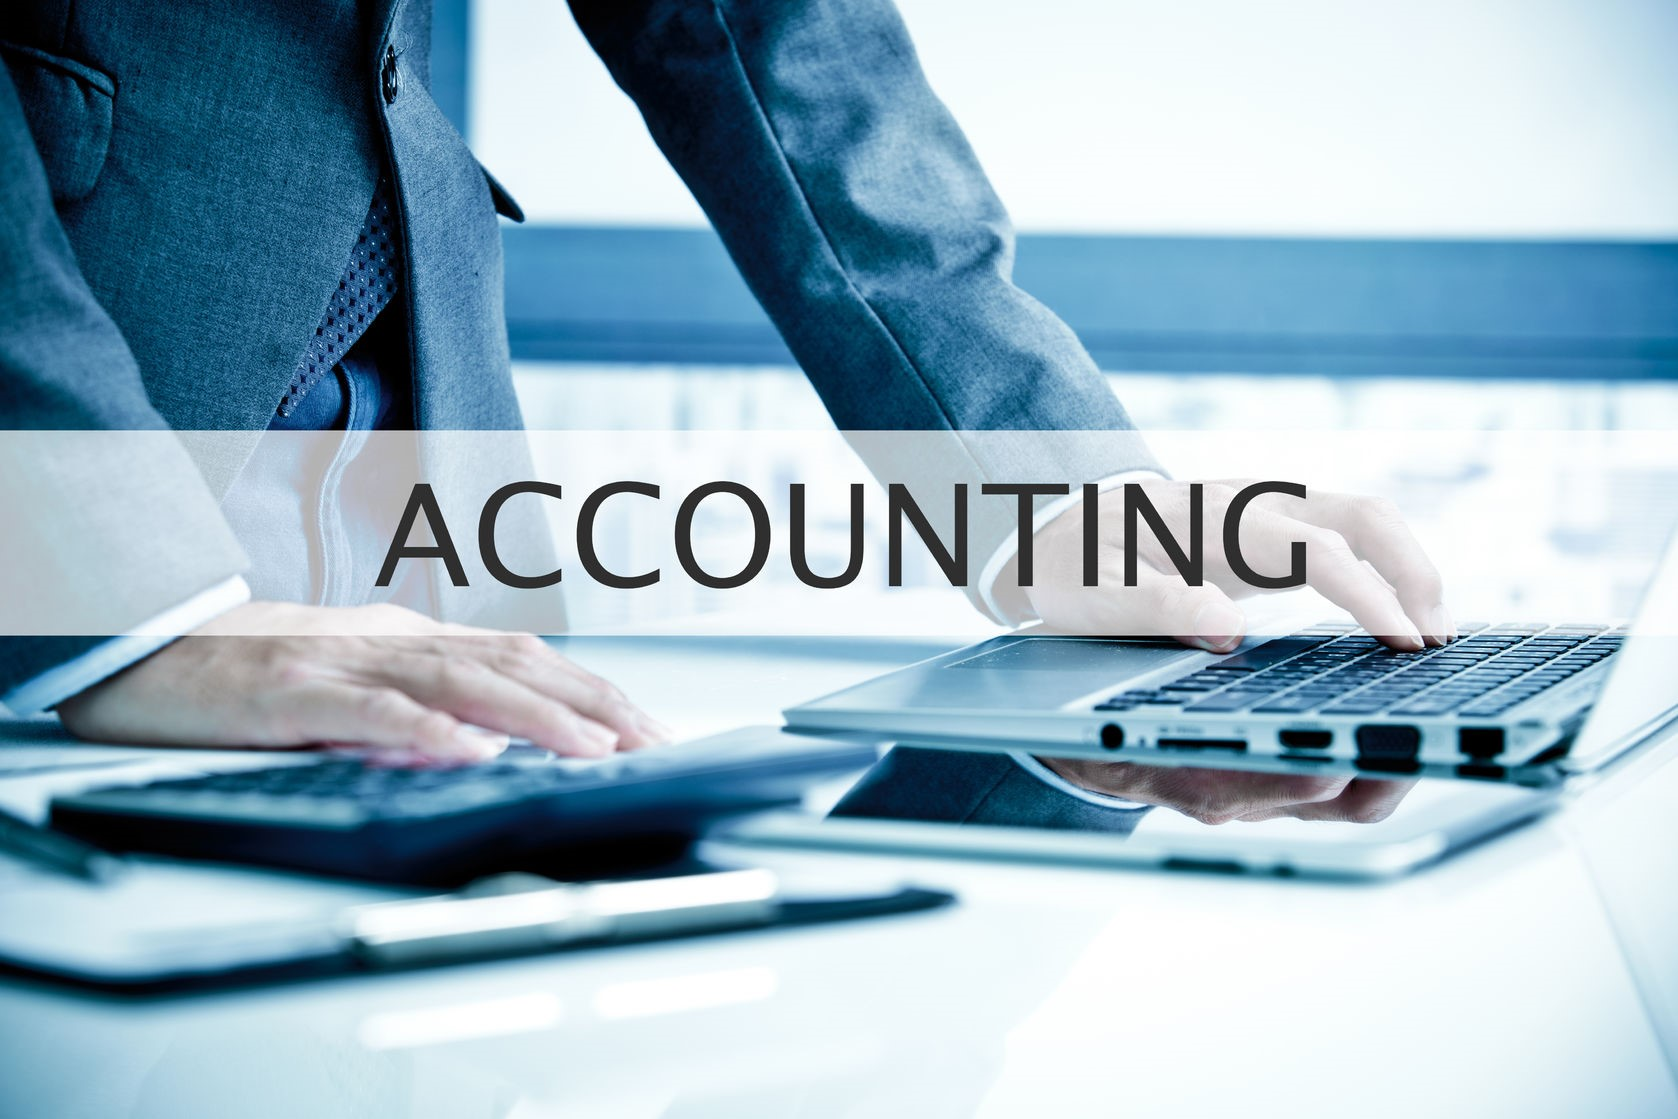 Demonstrate an understanding of basic accounting practice